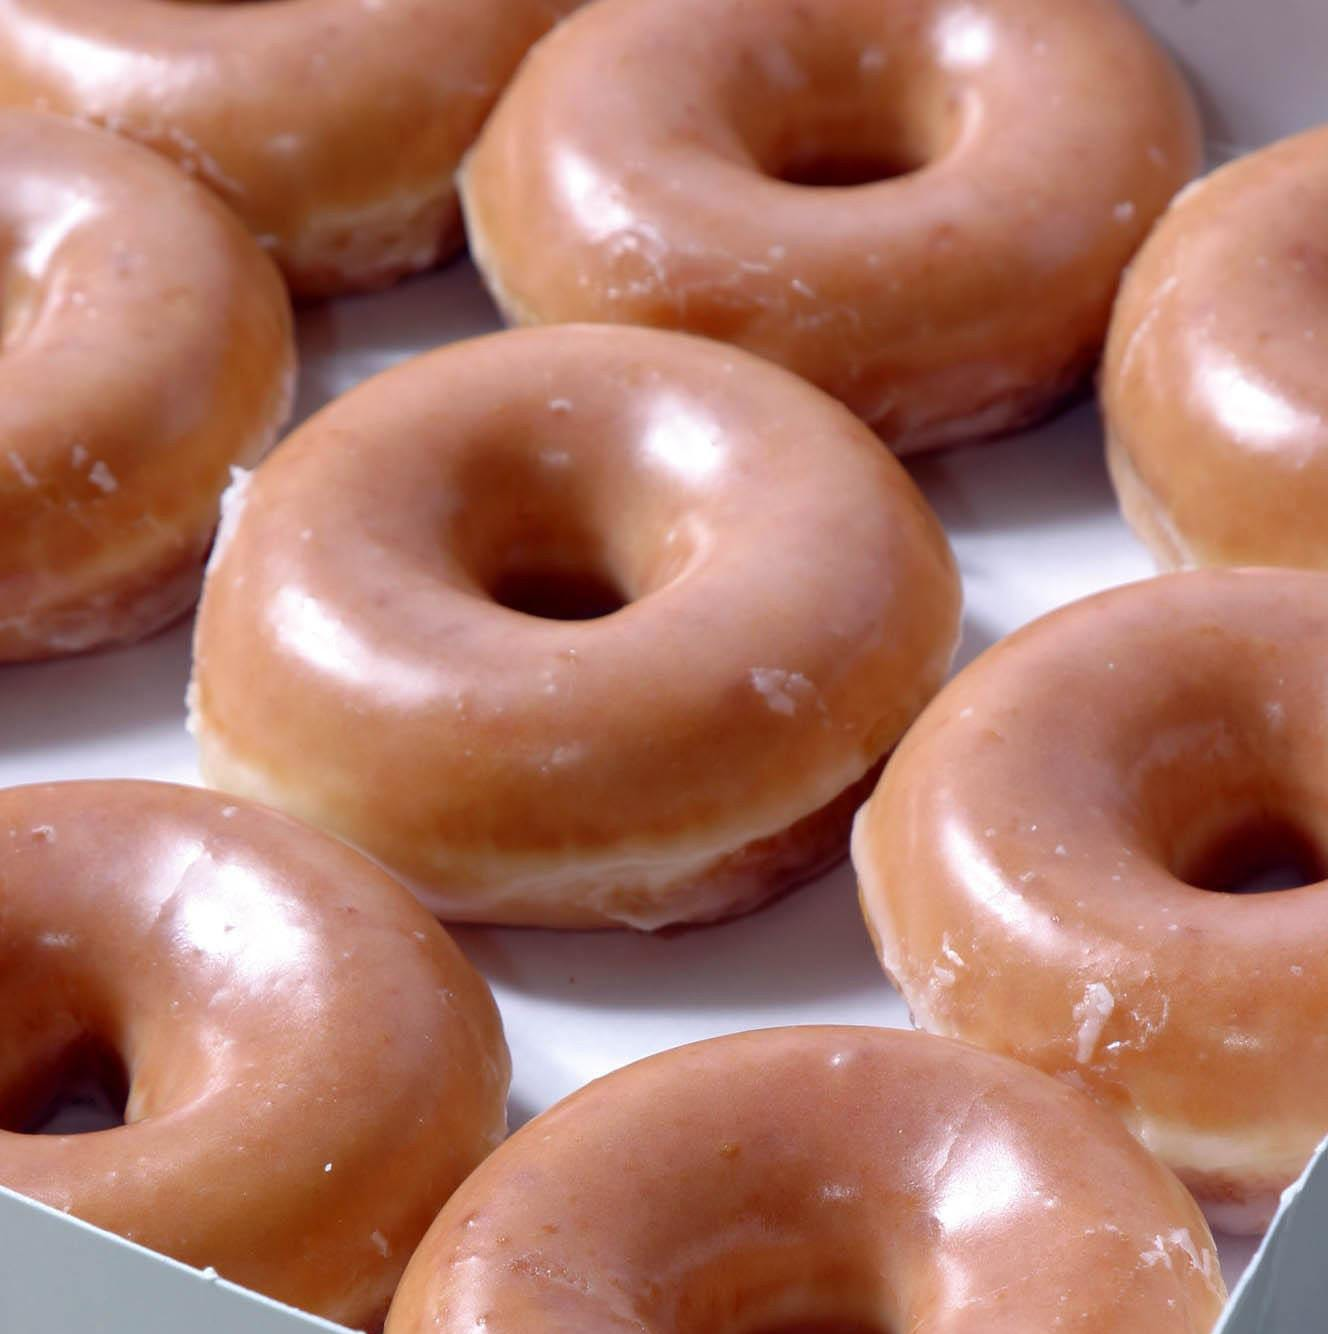 Krispy Kreme's 'Day of the Dozens': Buy a dozen, get dozen Original Glazed for $1